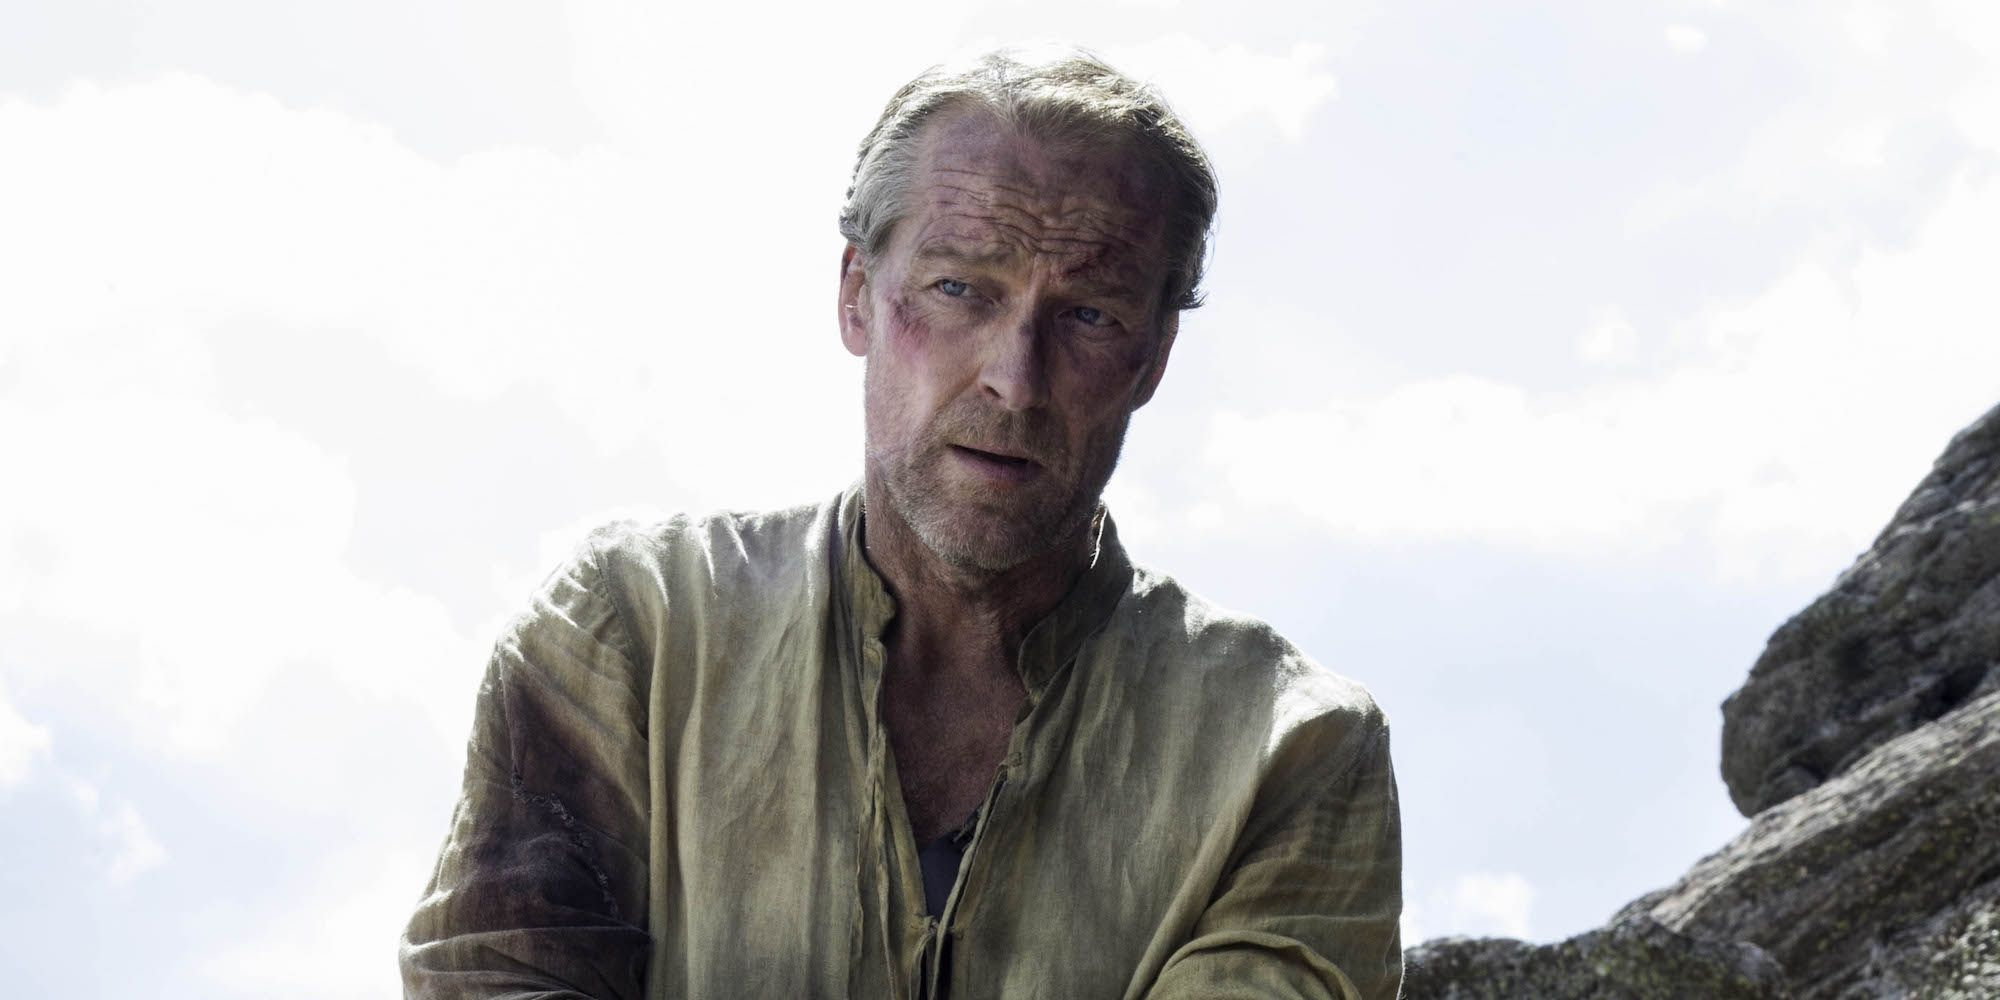 Oh, You Know, Just Connecting the Very Important Dots Between Sam and Jorah on Game of Thrones